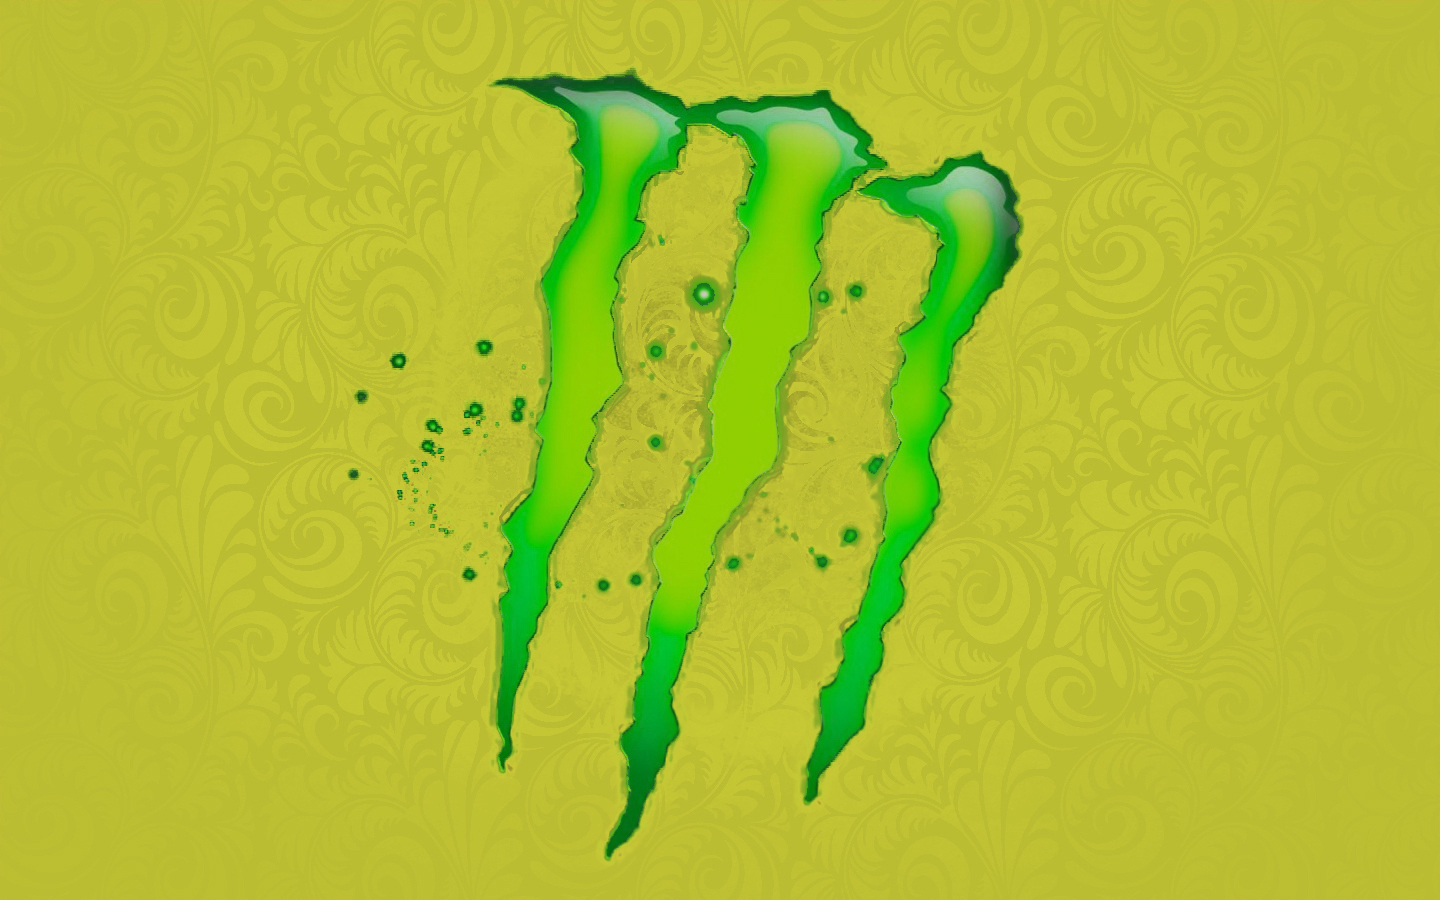 Monster Energy Wallpaper on Logos Monster Energy Hd Wallpaper   Wild Animal   Reptiles   423746